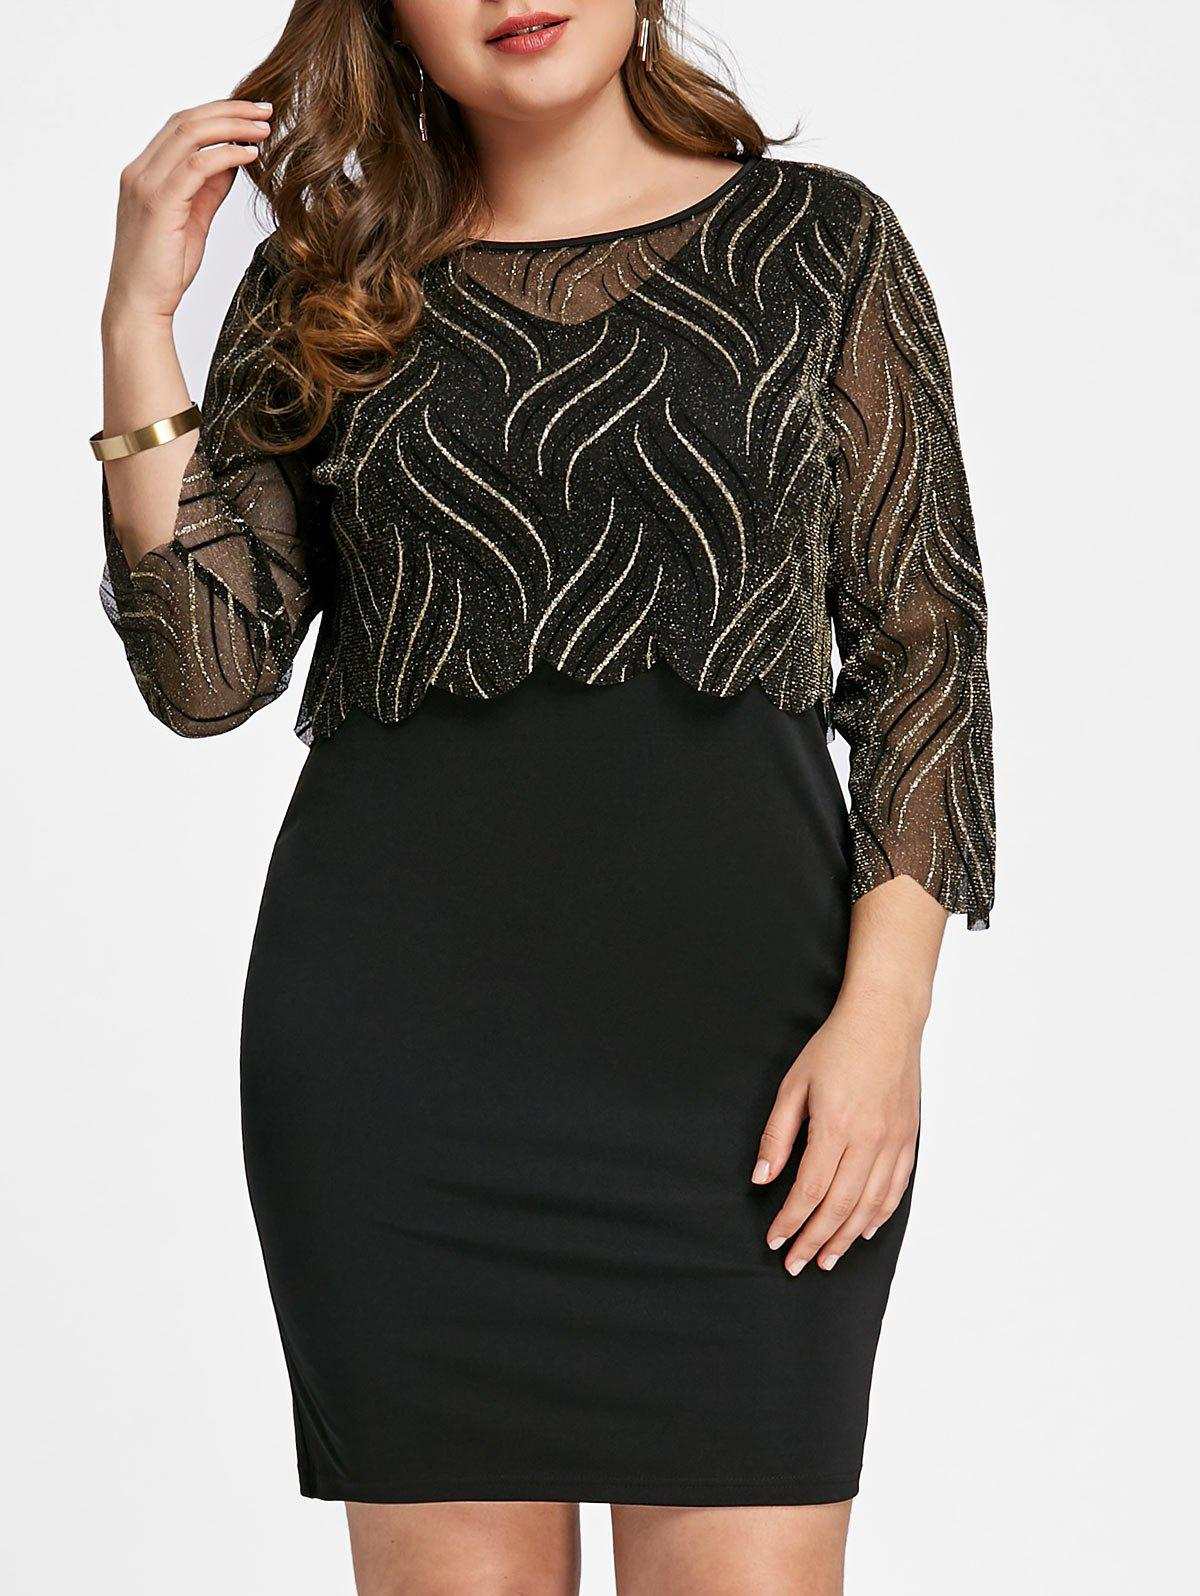 Sale Plus Size Shining Top with Fitted Dress